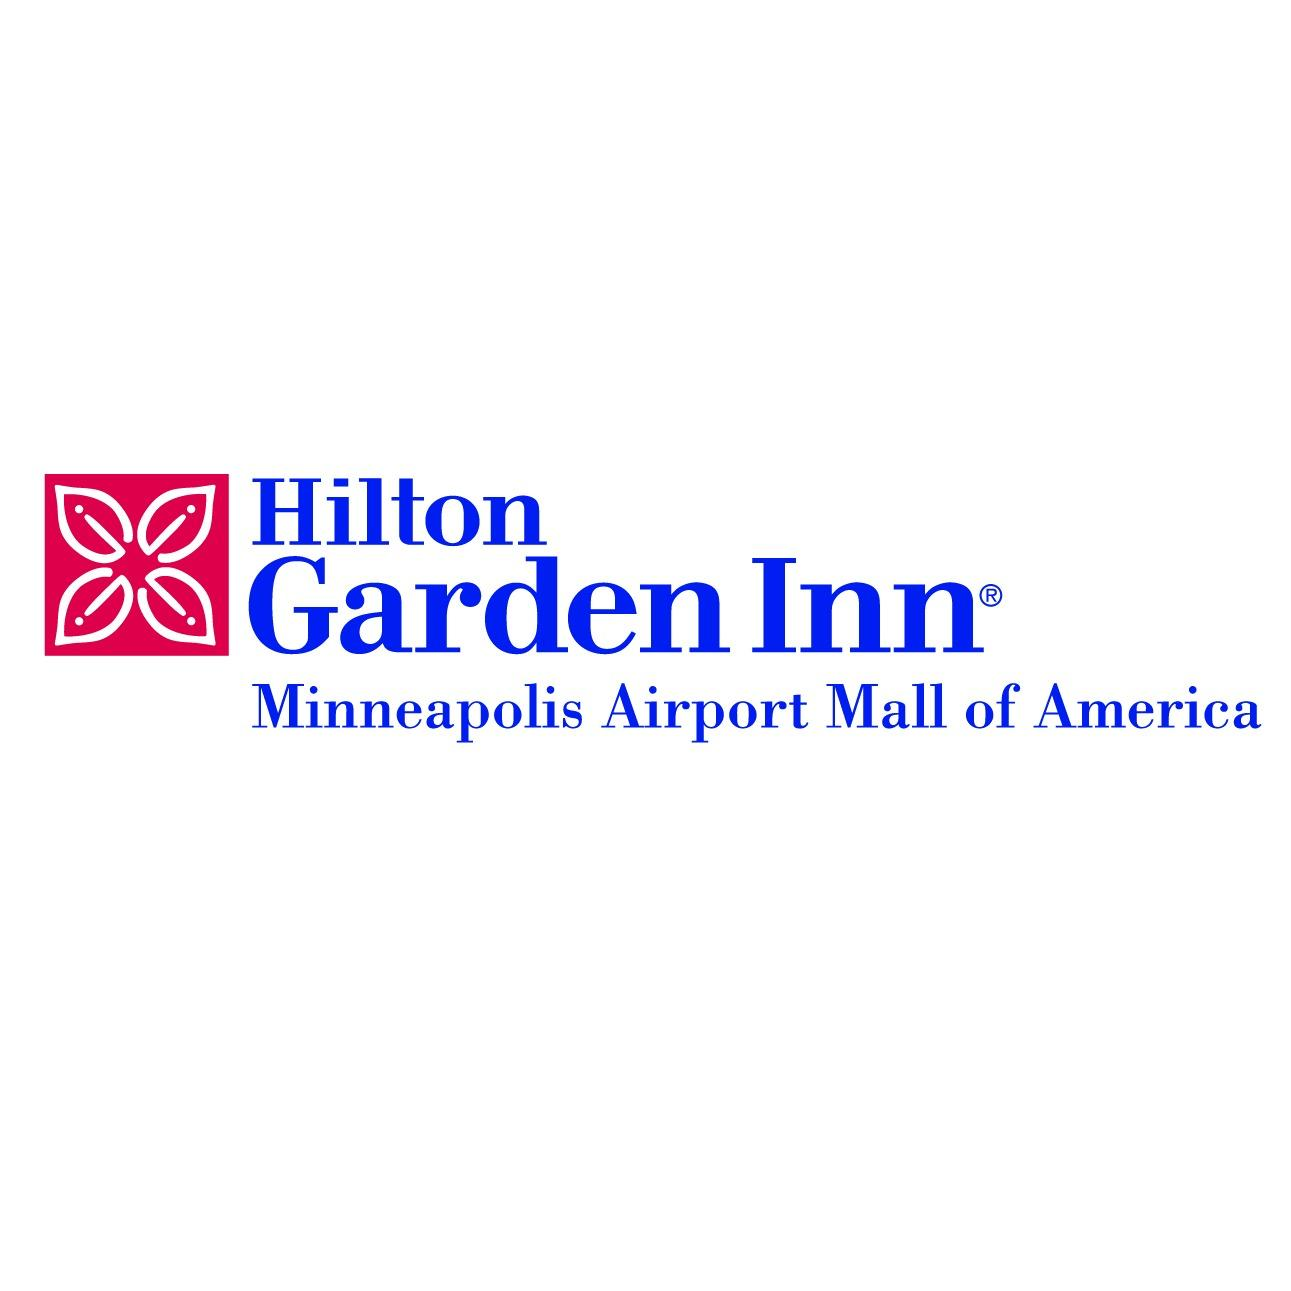 Valid Coupon Motherhood Maternity Coupons Printable Promo Codes Printable  Coupons.Printable Coupons For Hampton Inn, Hotels Near Darien Center Ny  14040, ...